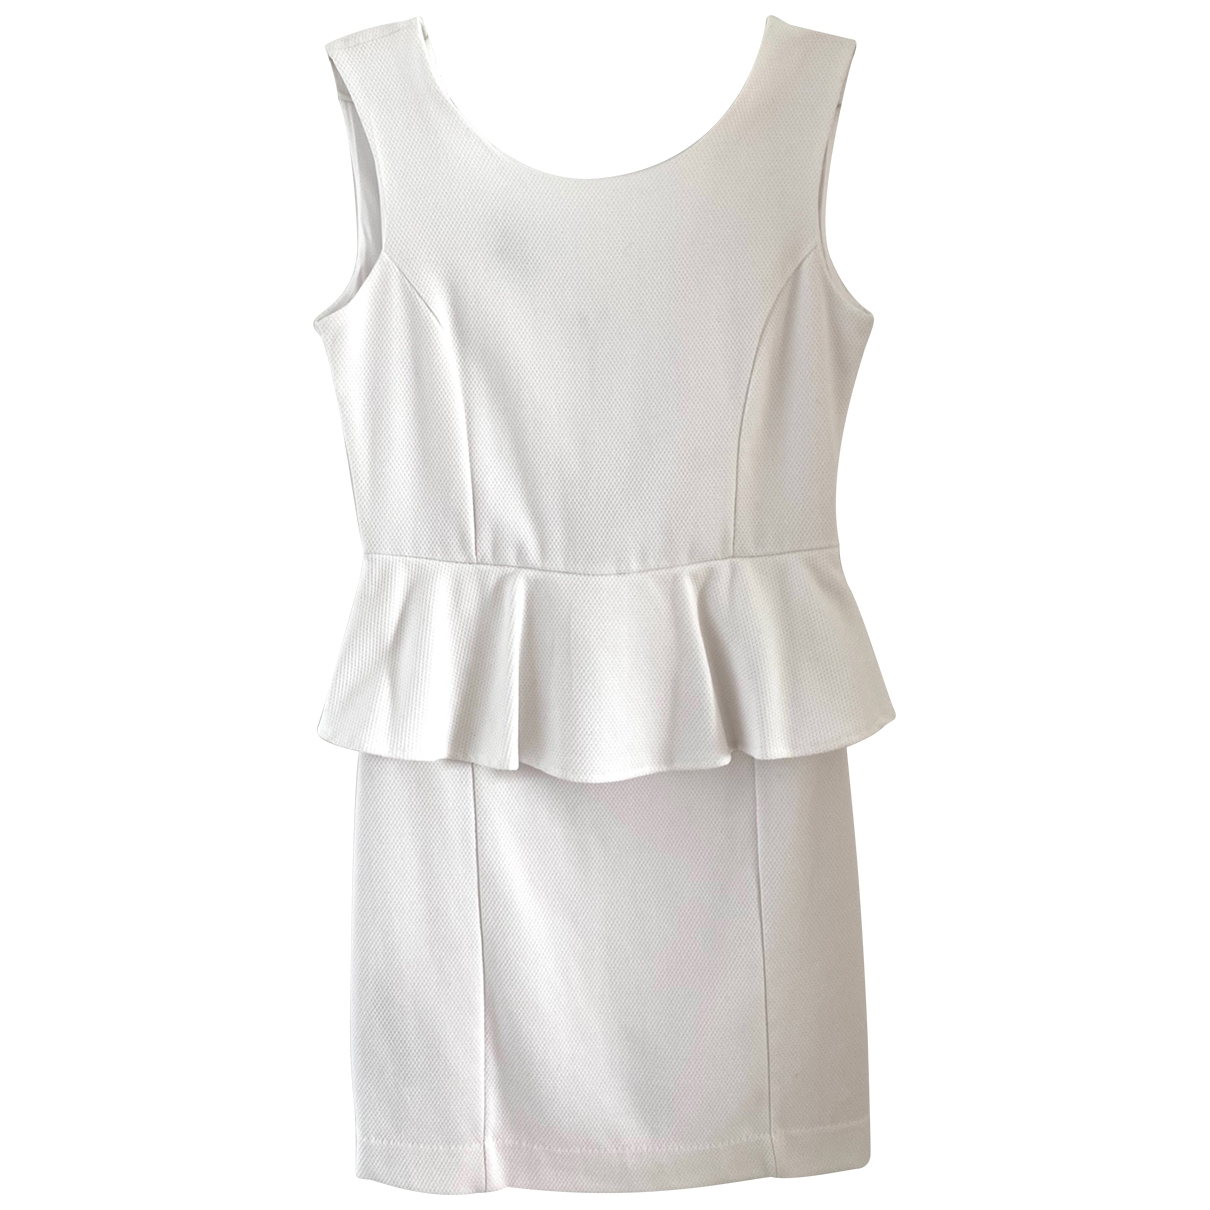 Uterque \N Kleid in  Weiss Polyester